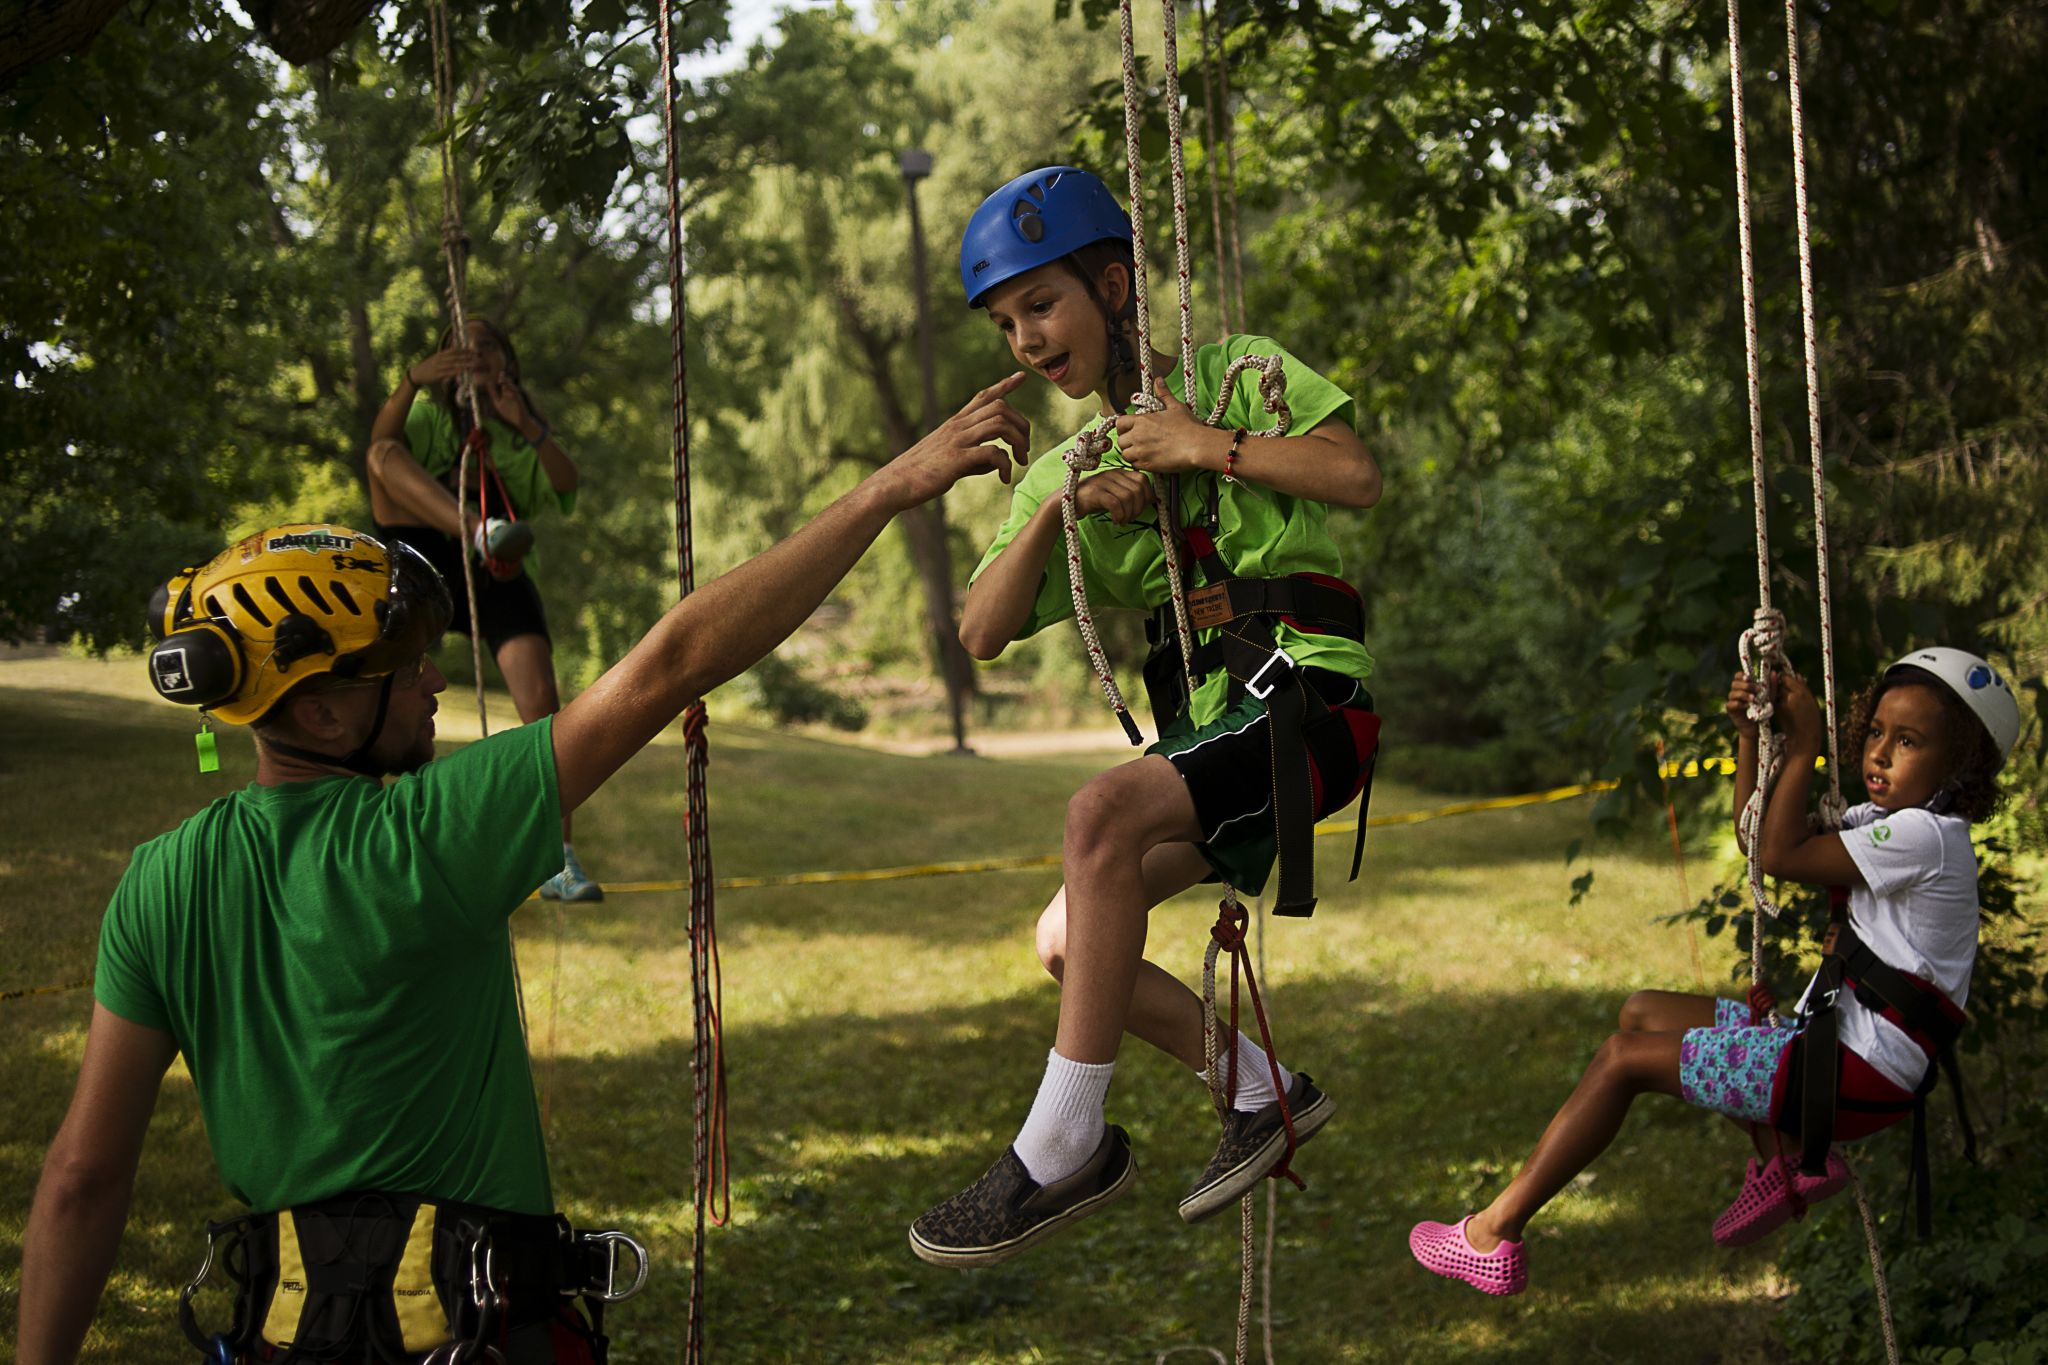 Tree Climbing at Dow Gardens Whiting Forest - Midland Daily News